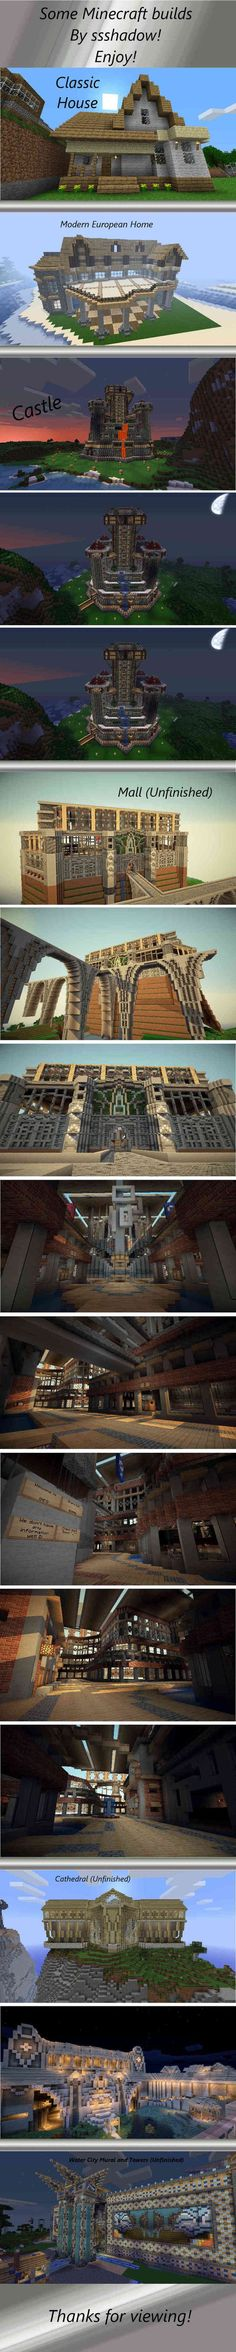 What do you build in #Minecraft? #Geek #HD #art